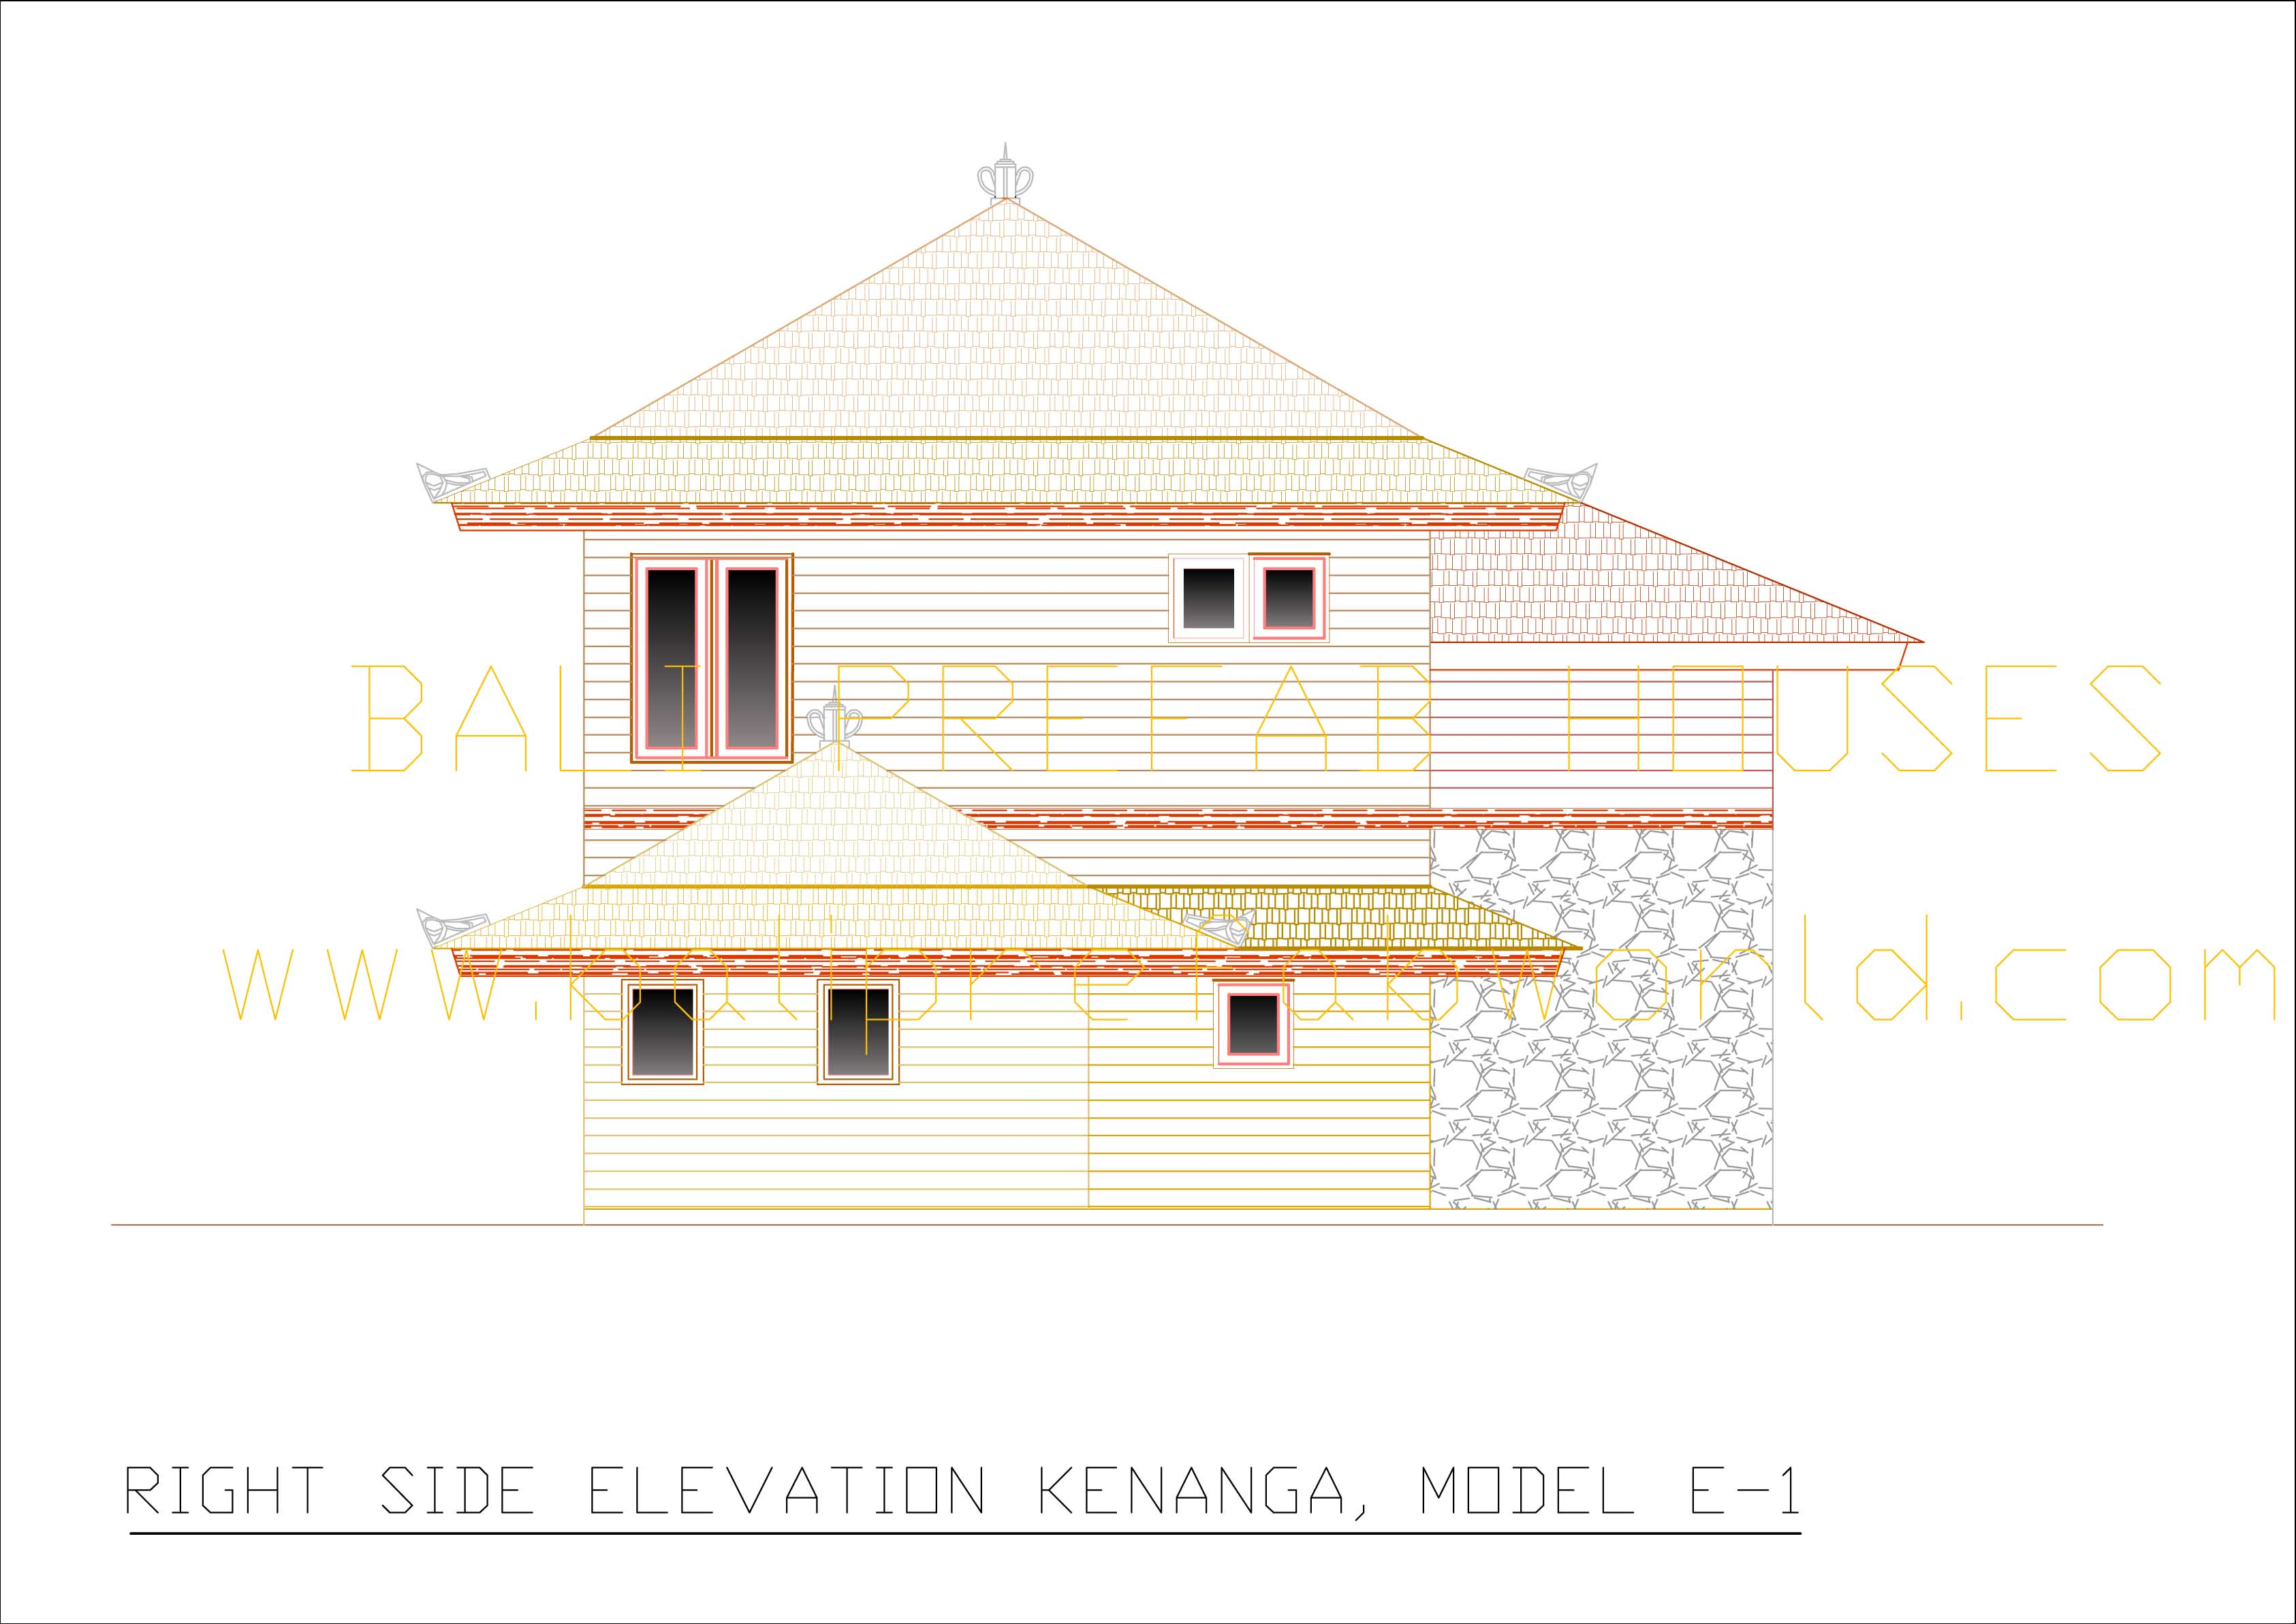 Kenanga right side elevation